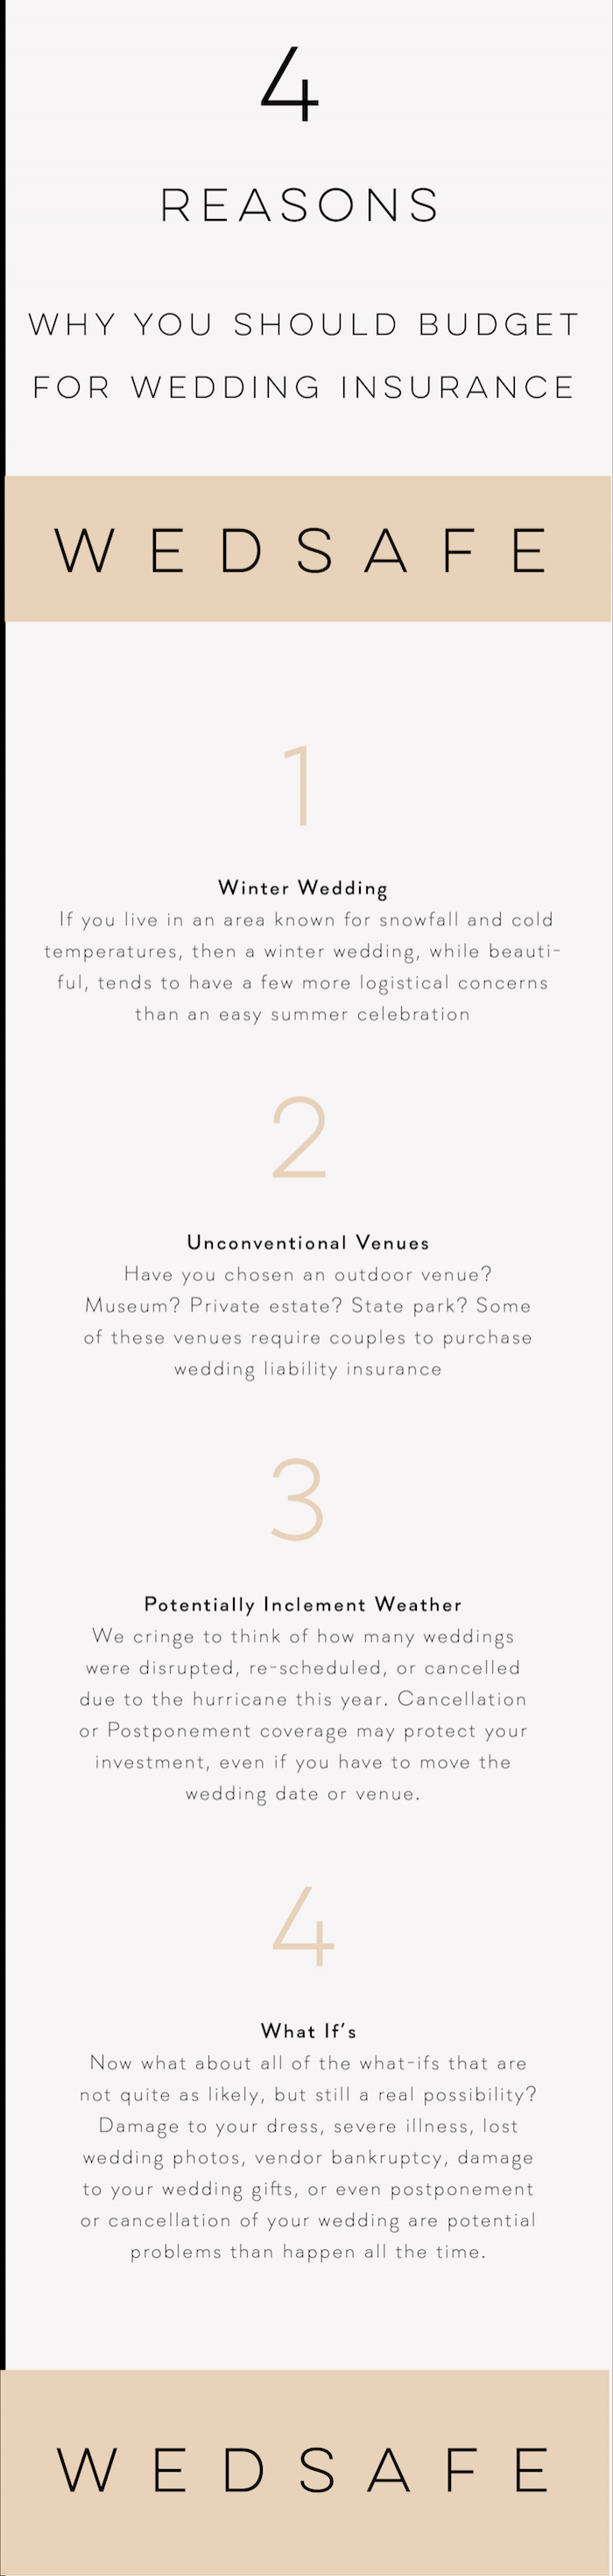 Why You Should Budget for Wedding Insurance